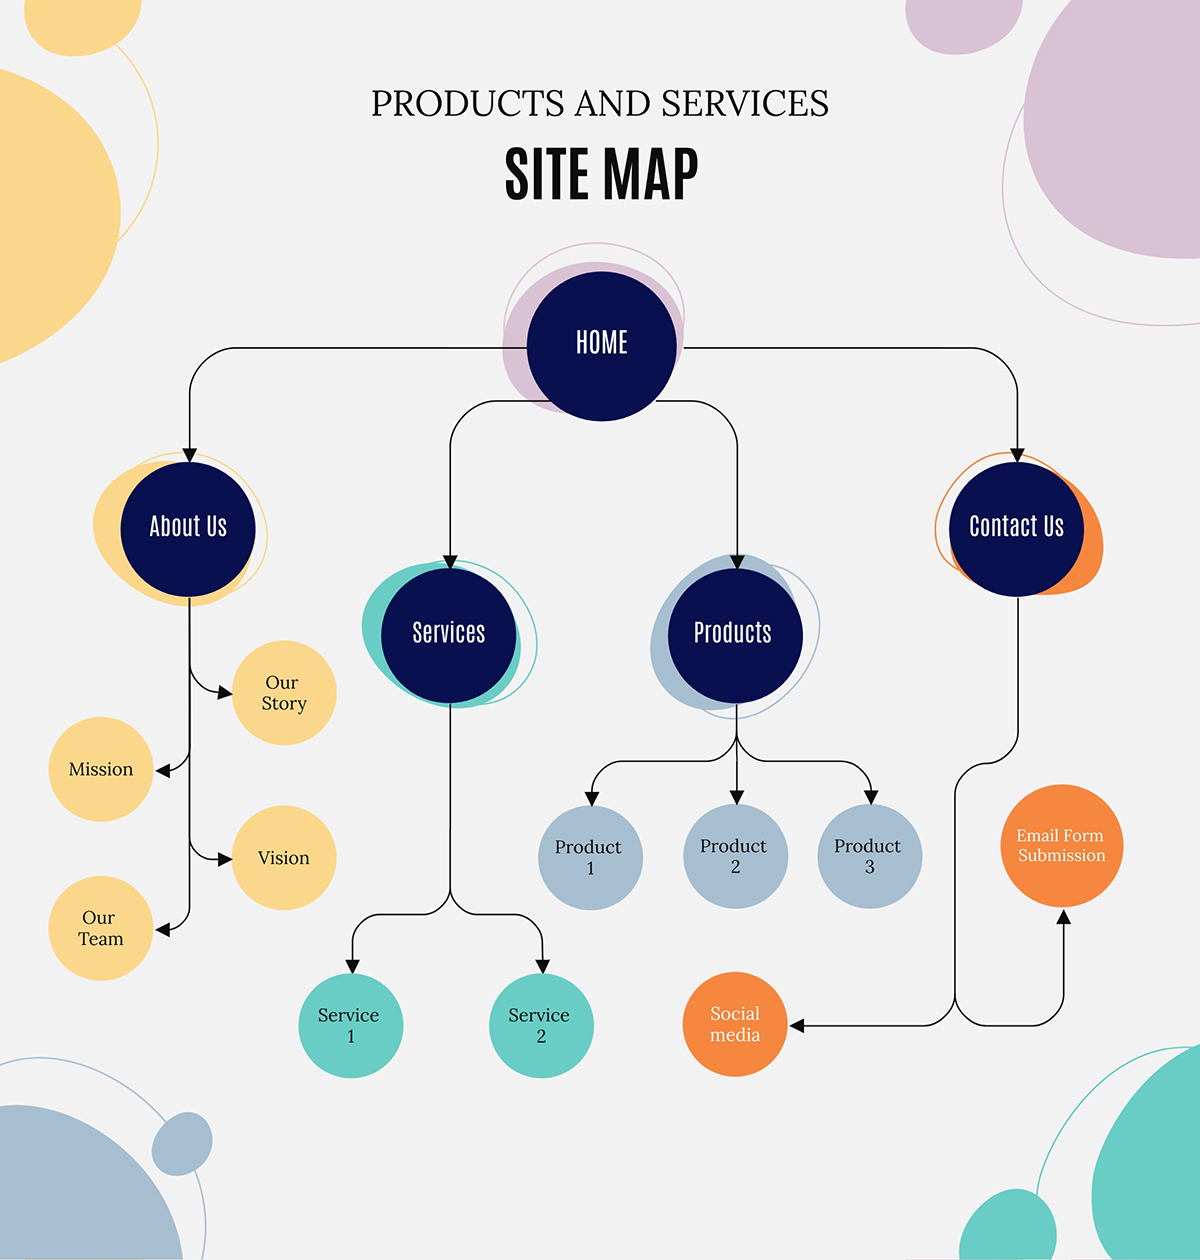 A products and services site map template available in Visme.